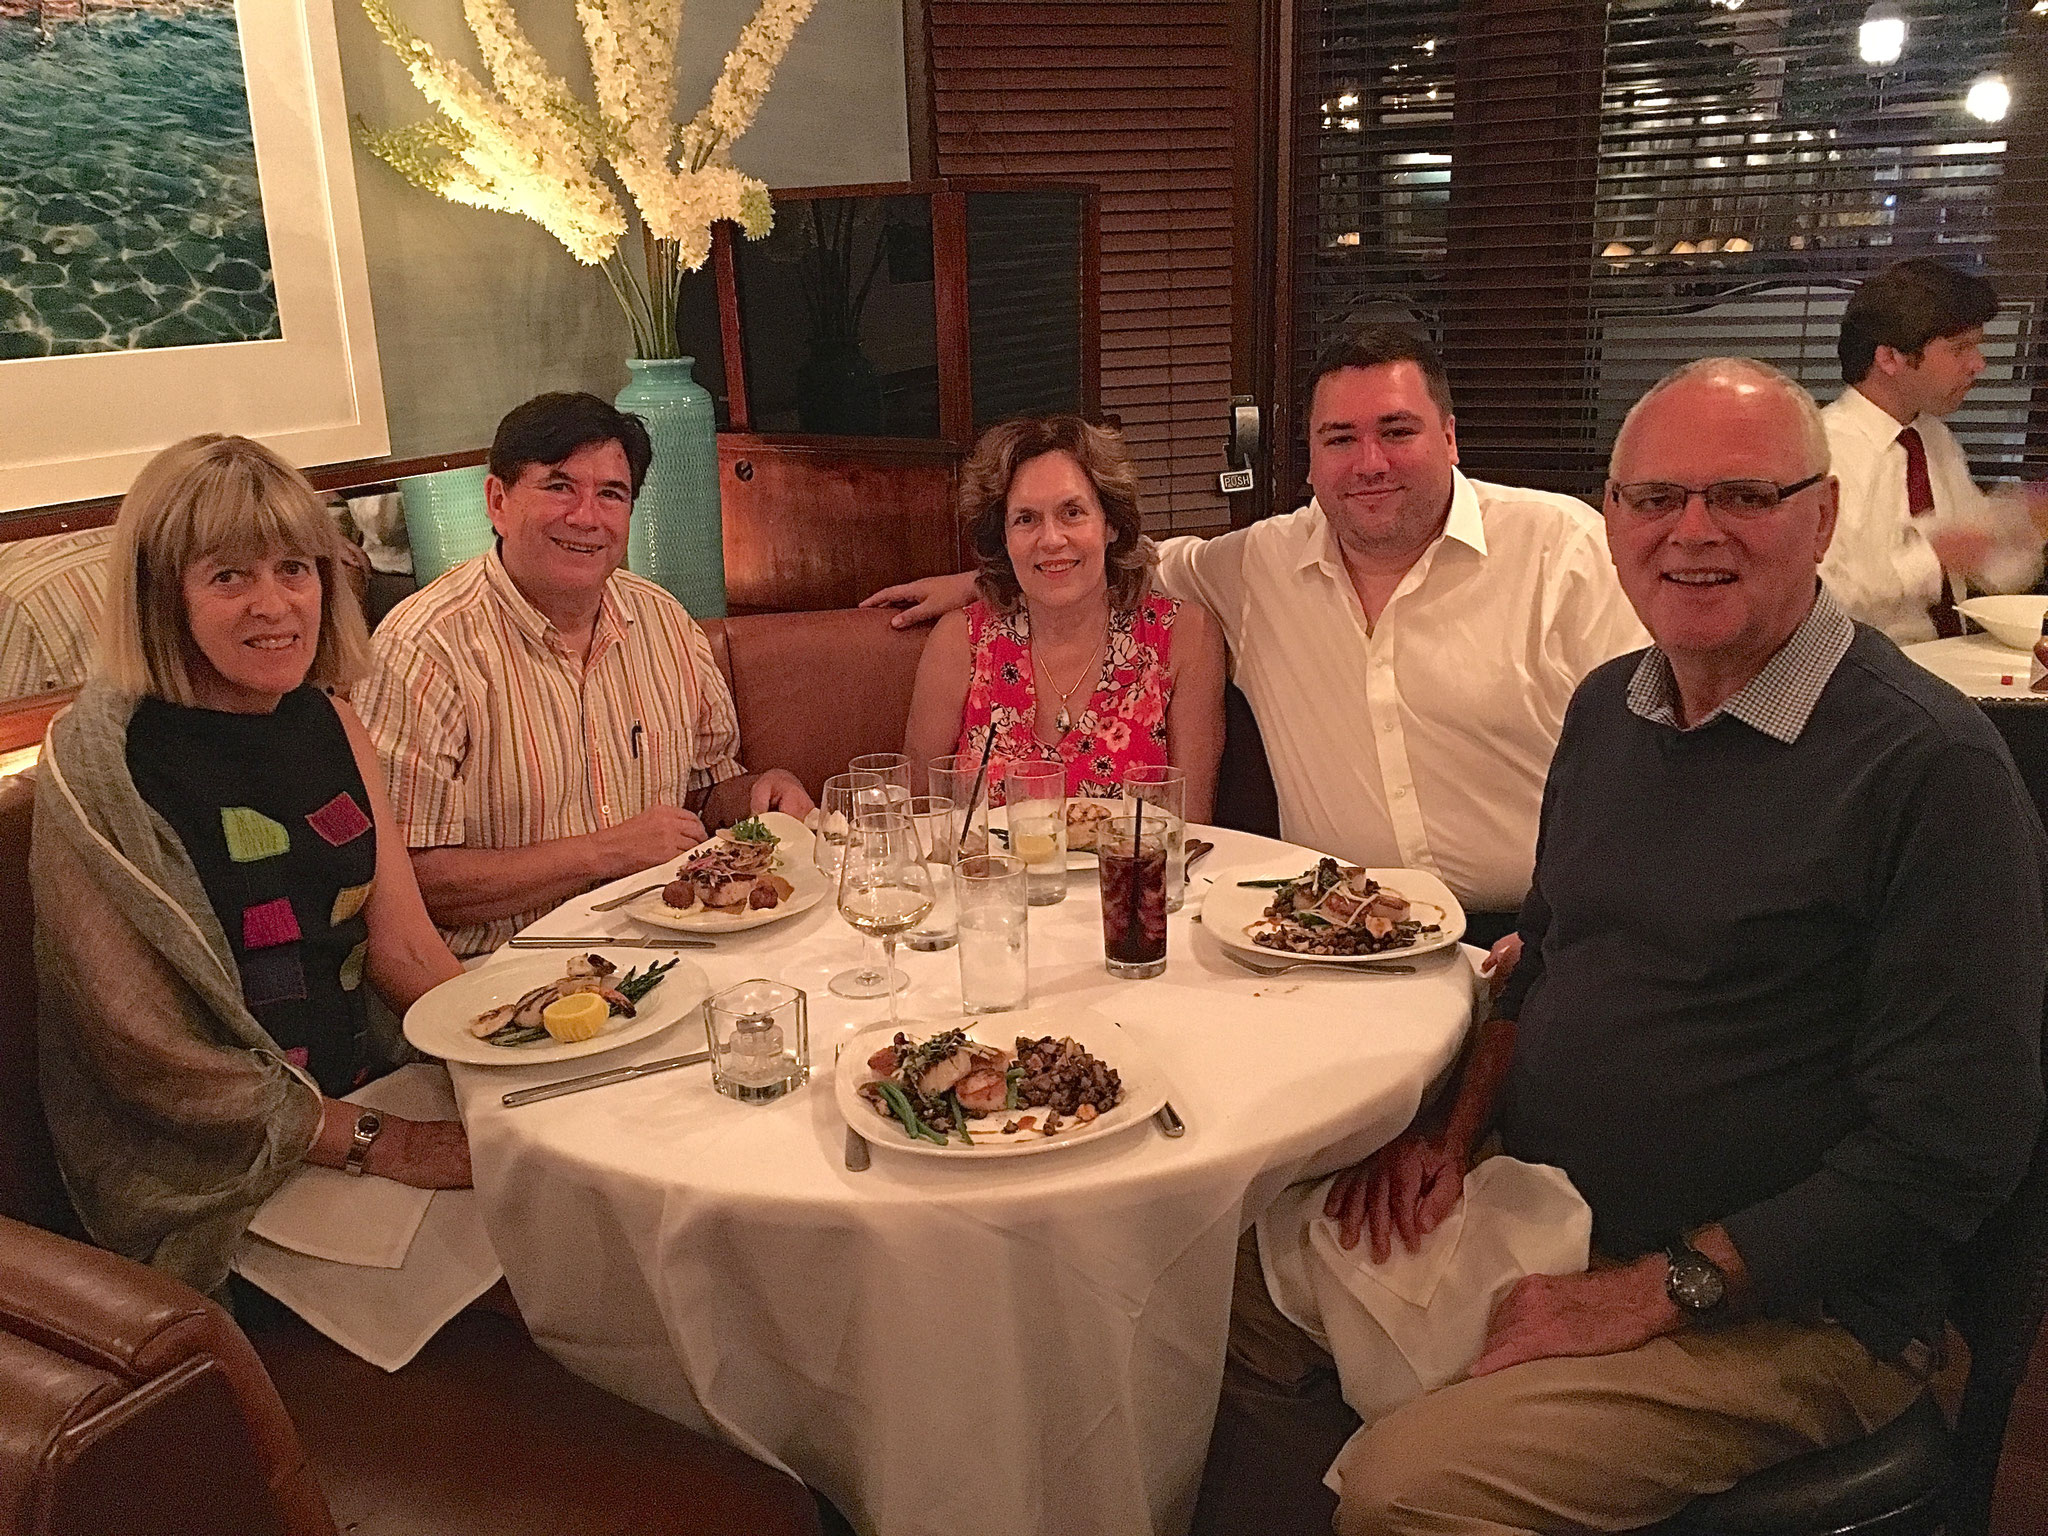 Nancy, John, Lorraine, Greg, & Bernd at the Atlantic Grill, dinner, 7-31-17